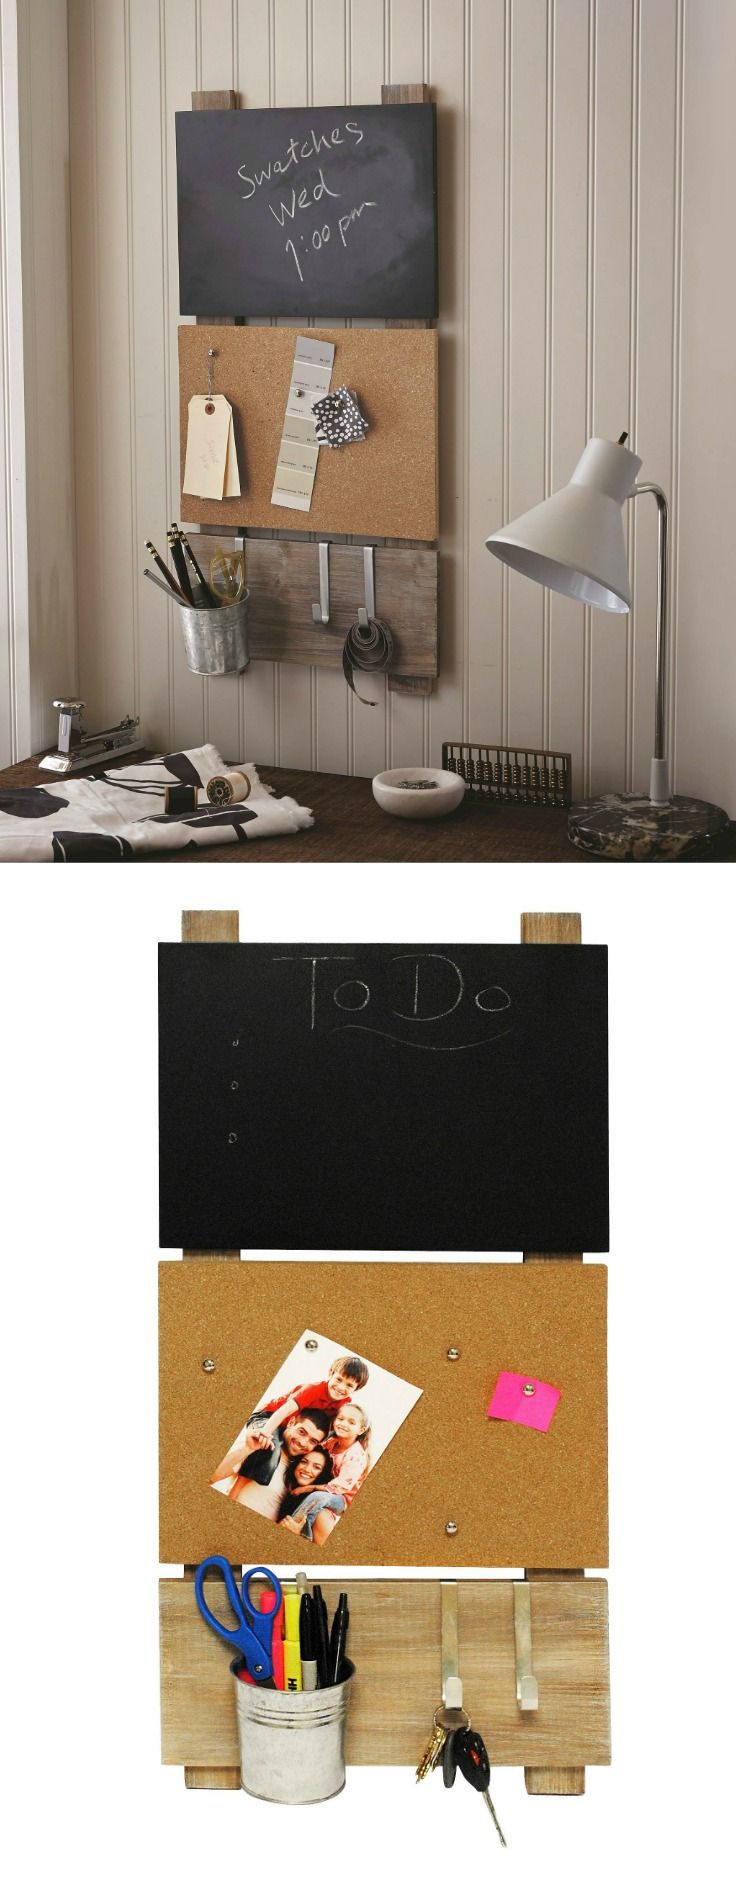 Organize your dorm with this handy all-in-one Bulletin Board with Chalkboard and Hooks! | Dorm Room Decor Ideas | College Student Organization Ideas | Dorm Room Decorations | Chalk and Cork Board | Key holder | Chalk Board